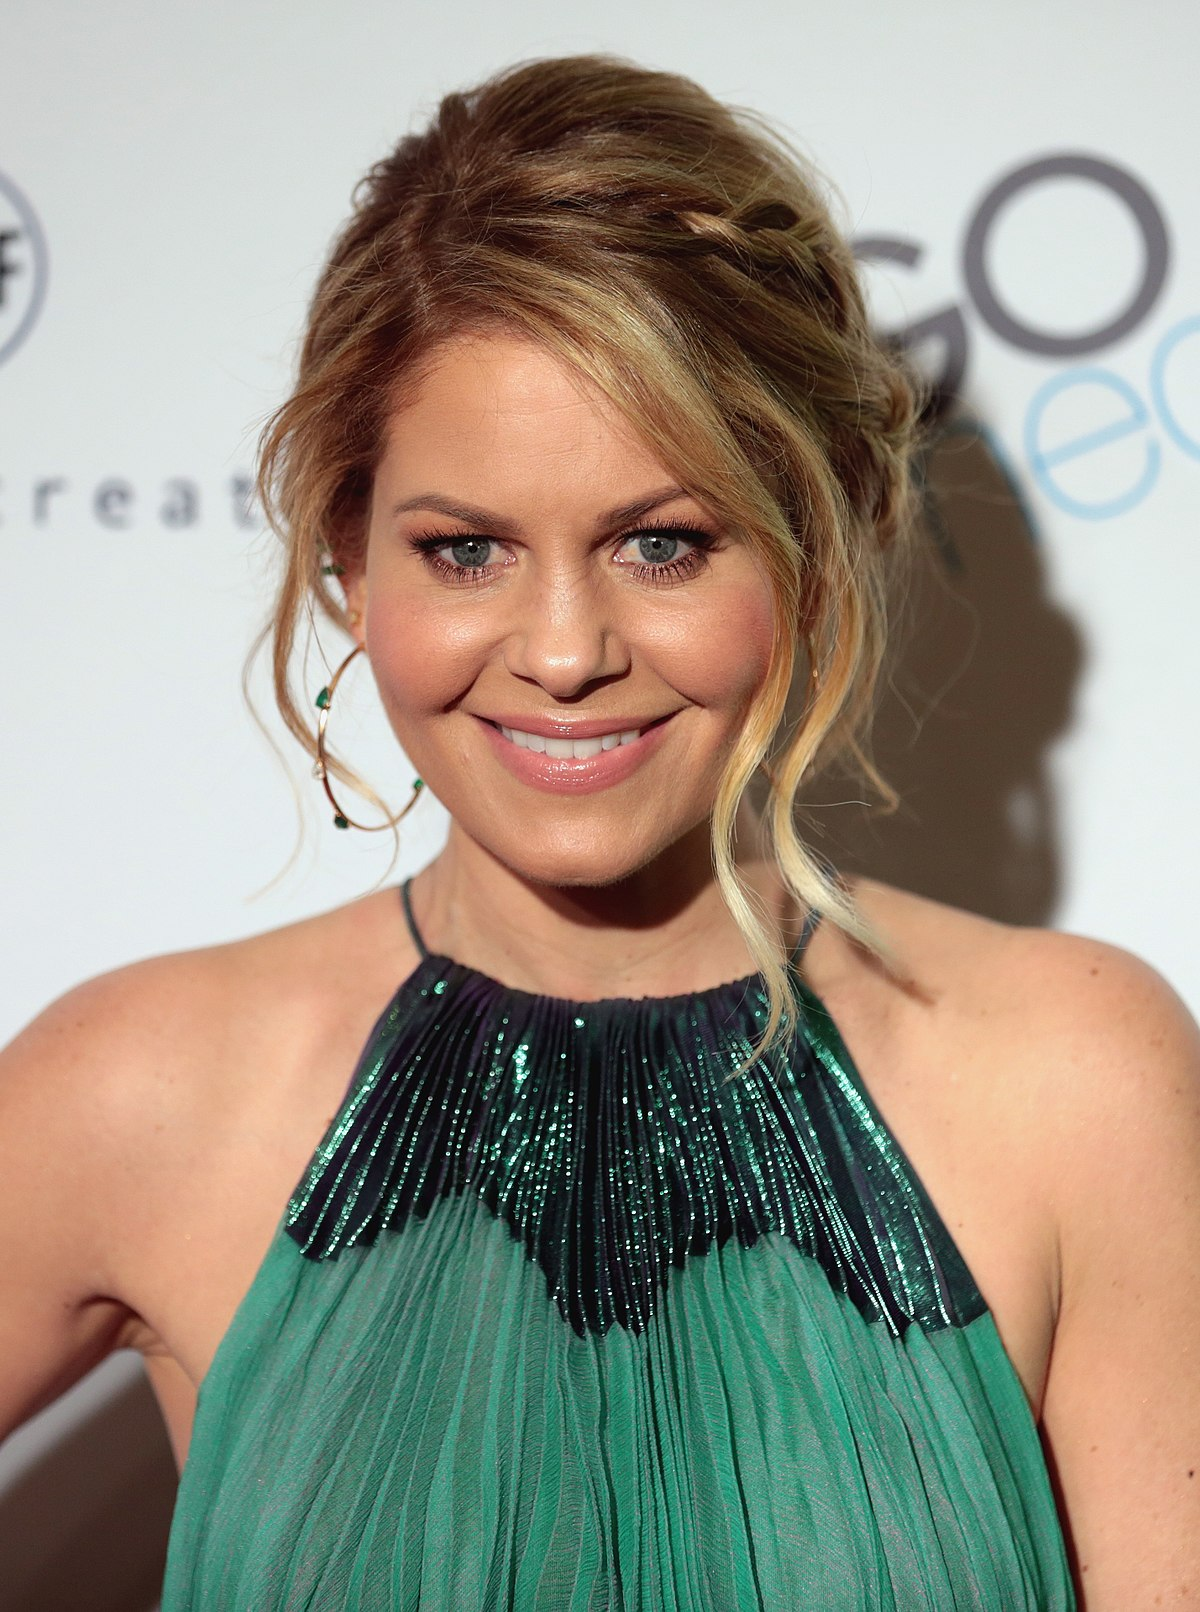 Actress 'My Faith is My Life,' Actress Candace Cameron Bure Reveals How She Found Faith in God